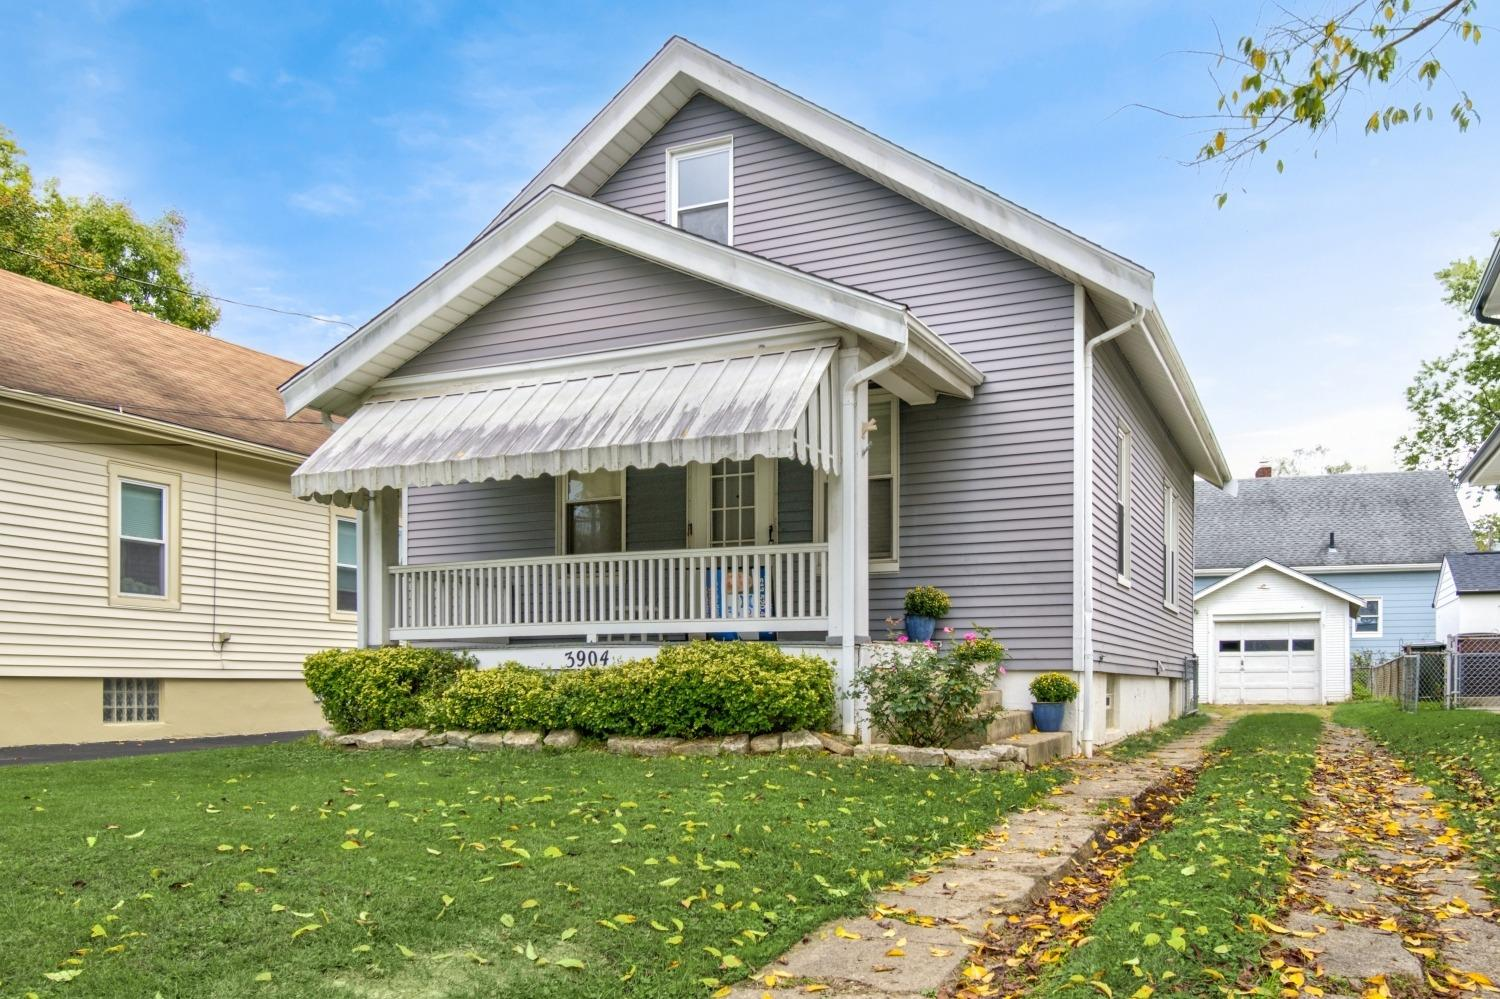 3904 Watterson Road, Fairfax, Ohio 45227, 2 Bedrooms Bedrooms, 7 Rooms Rooms,1 BathroomBathrooms,Single Family Residence,For Sale,Watterson,1719163